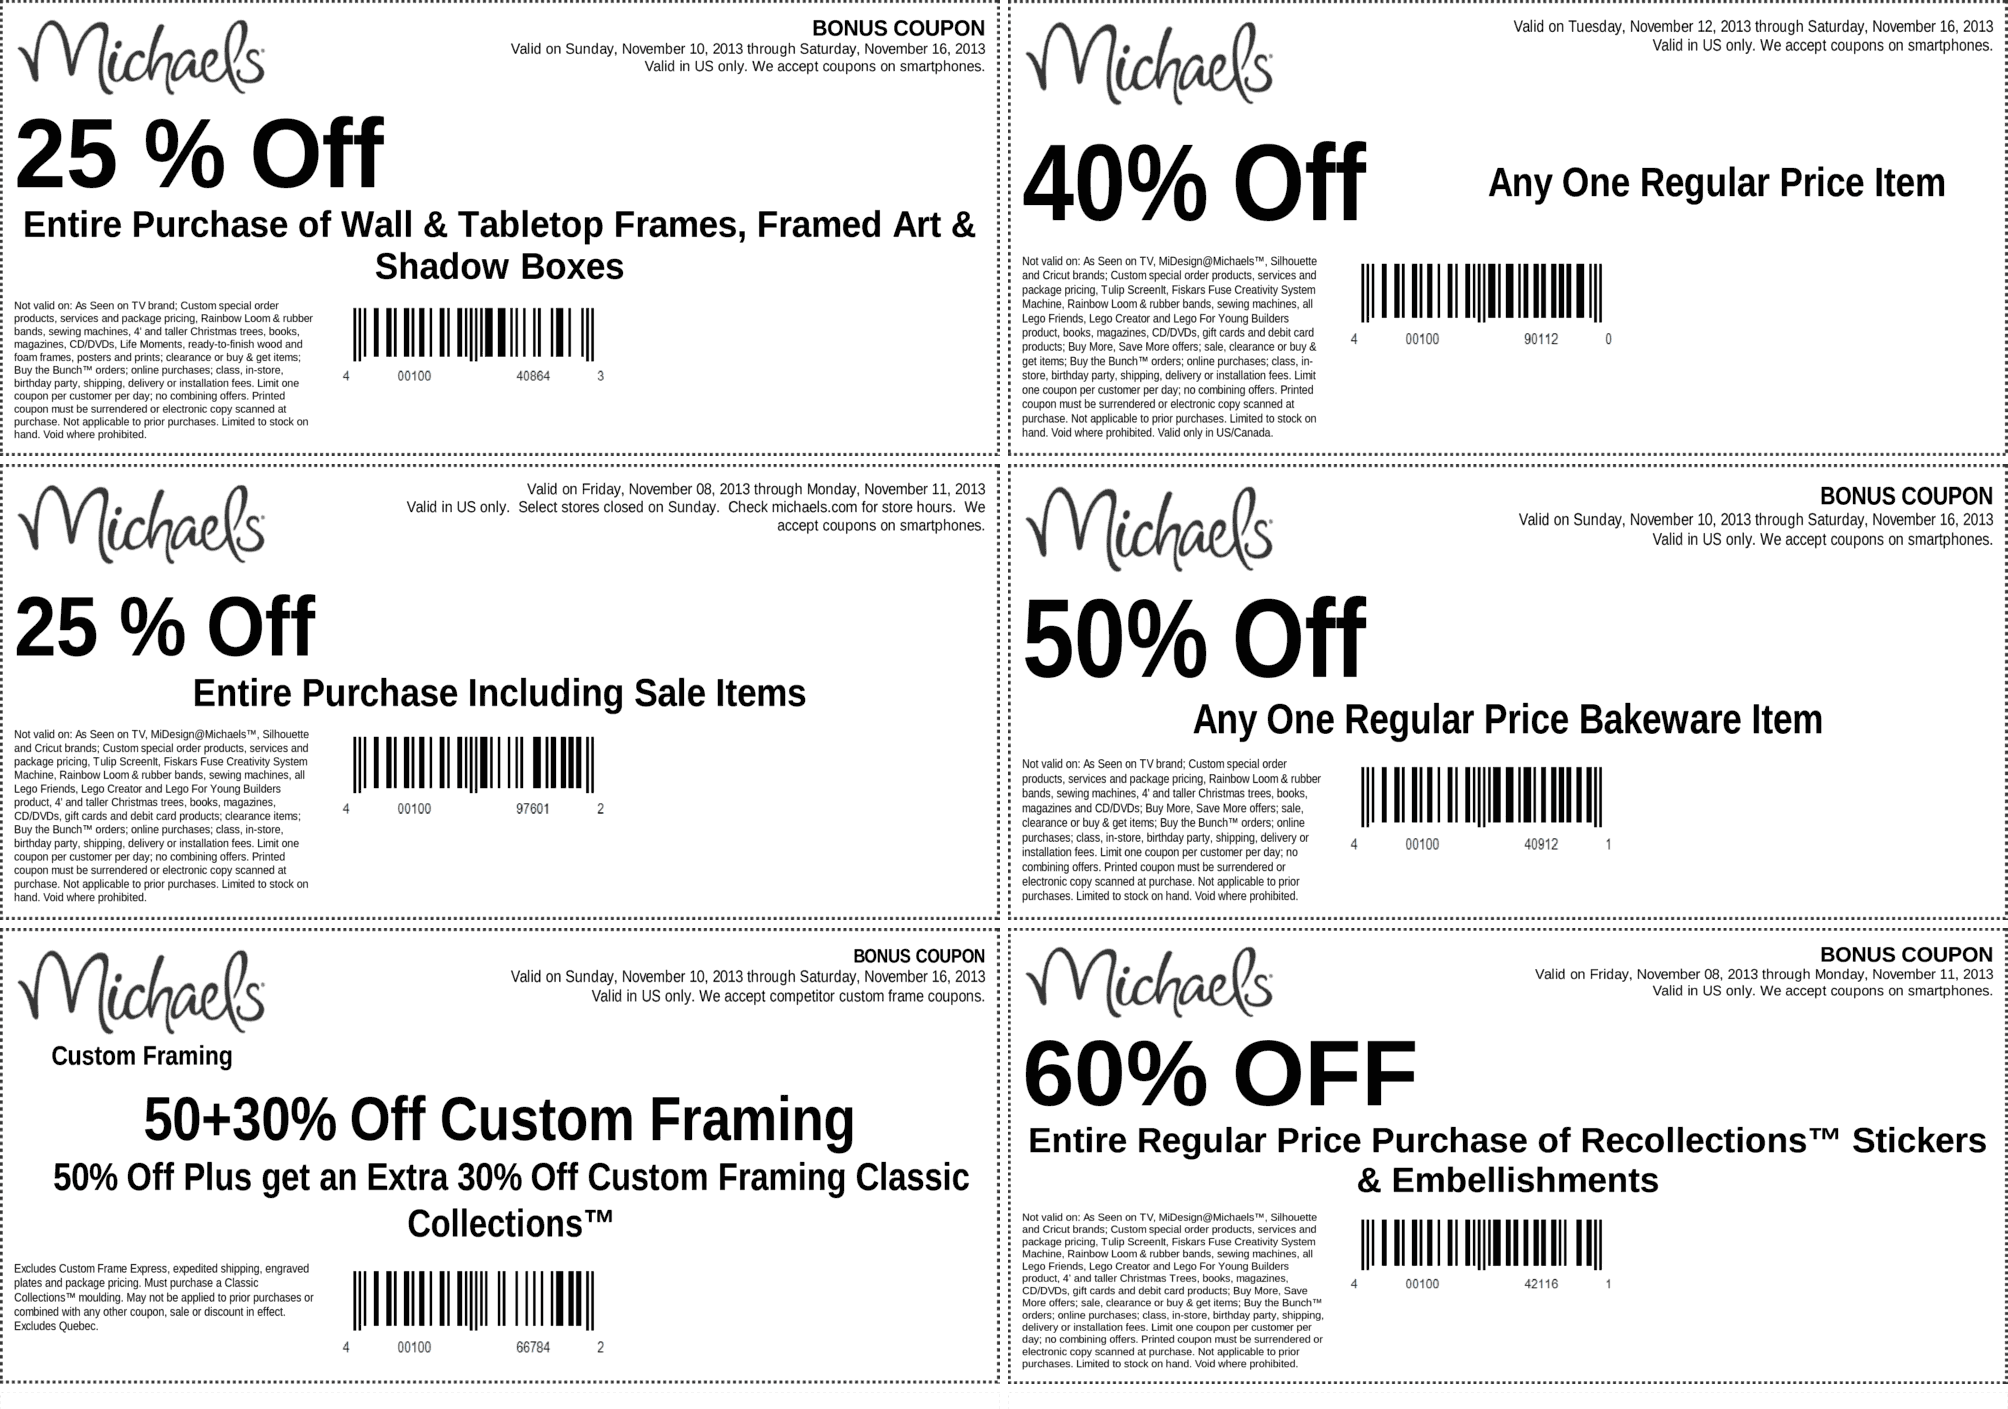 michaels coupon michaels promo code from the coupons app off everything off a single item more at michaels december - Michaels Frames Coupons